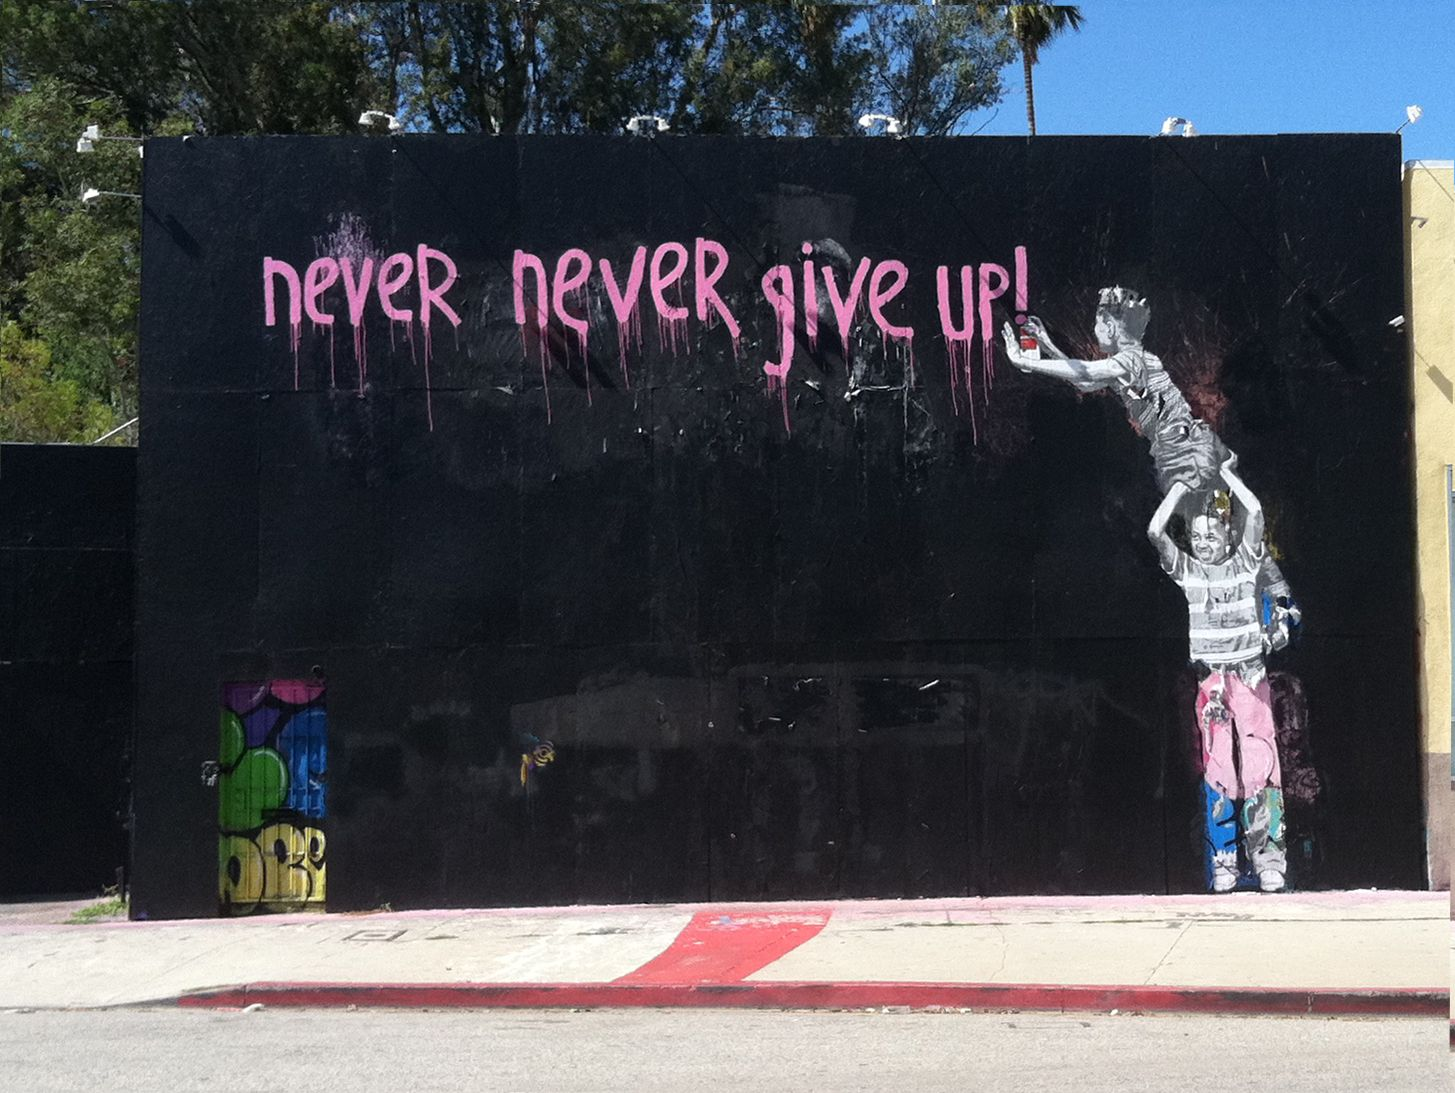 Thanks Banksy, across from the Burger King down La Brea